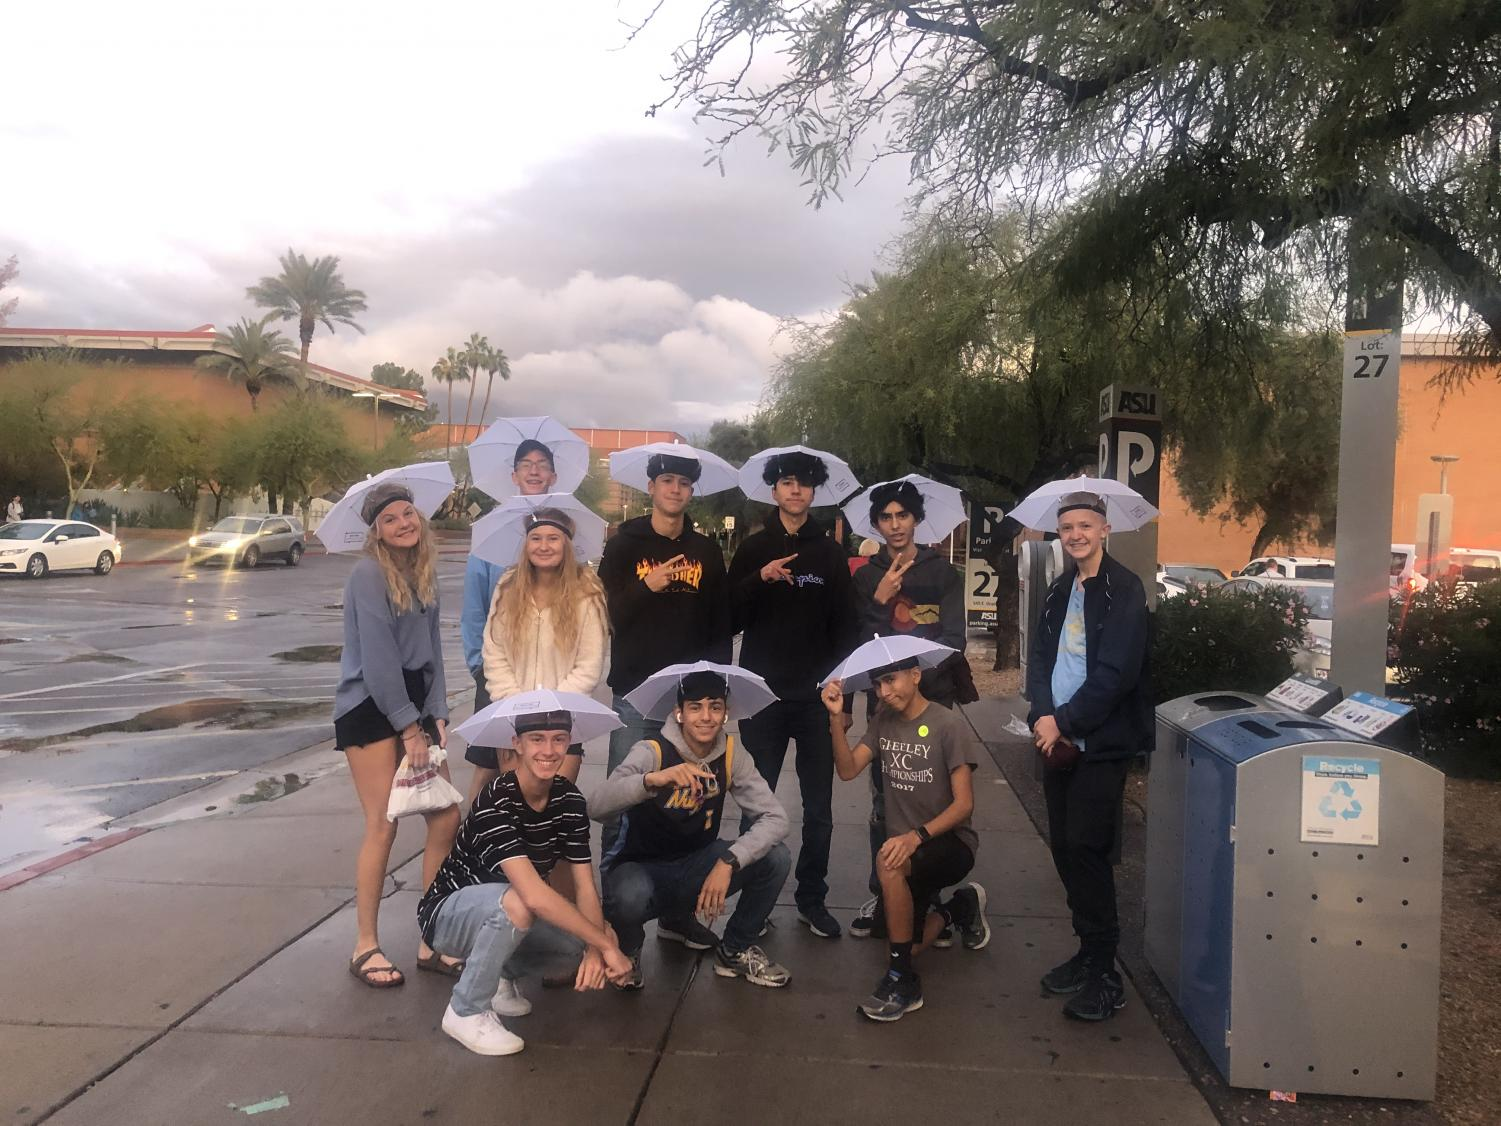 It rained on the cross country team during its trip to Arizona.